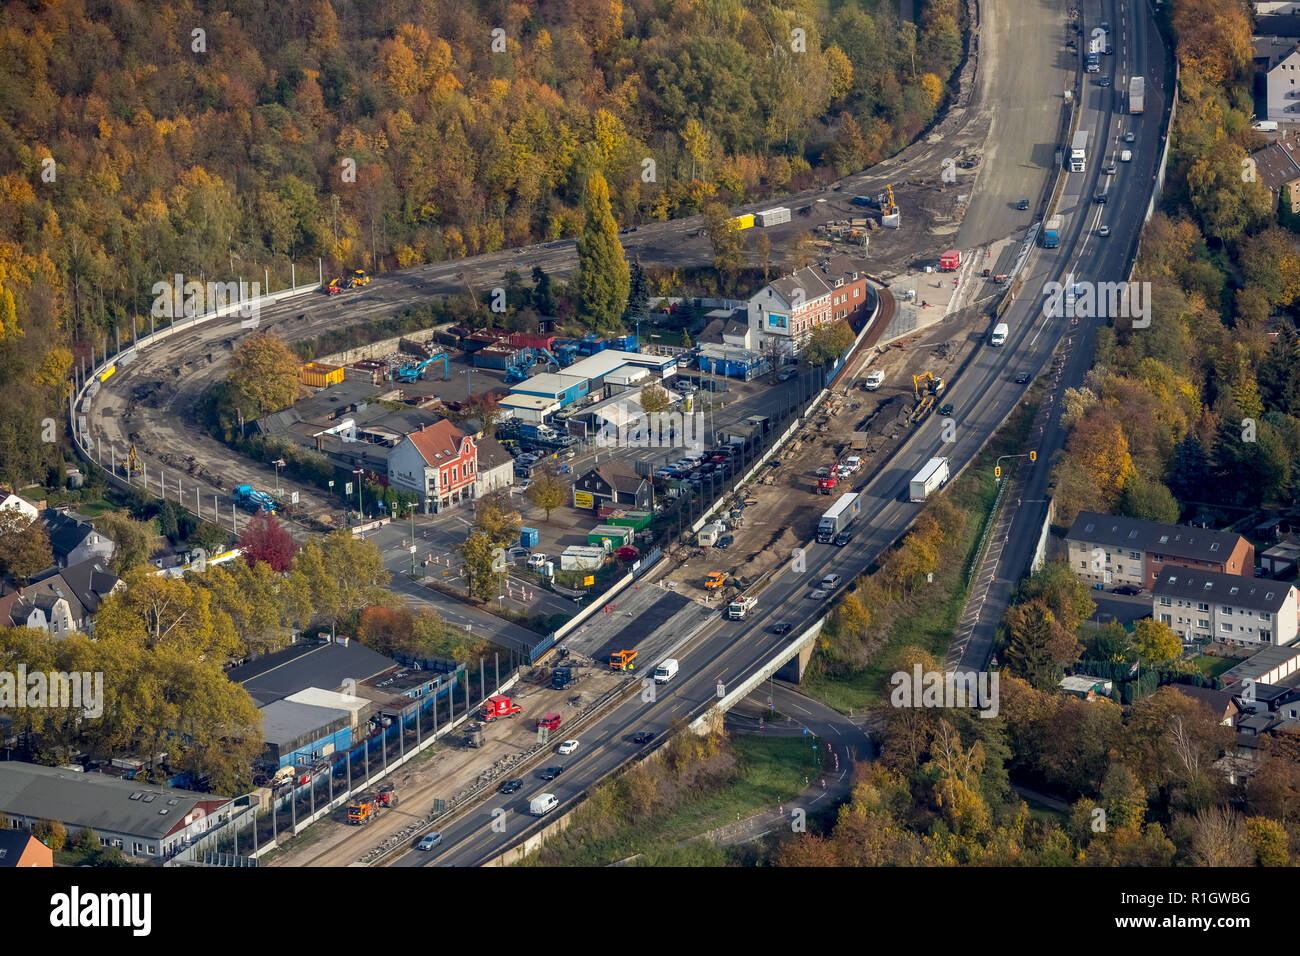 Aerial view, motorway construction site A2 Altenessen, Karnap, motorway A2, softening of the road ceiling, blocking of one lane, Essen, Ruhr area, Nor Stock Photo